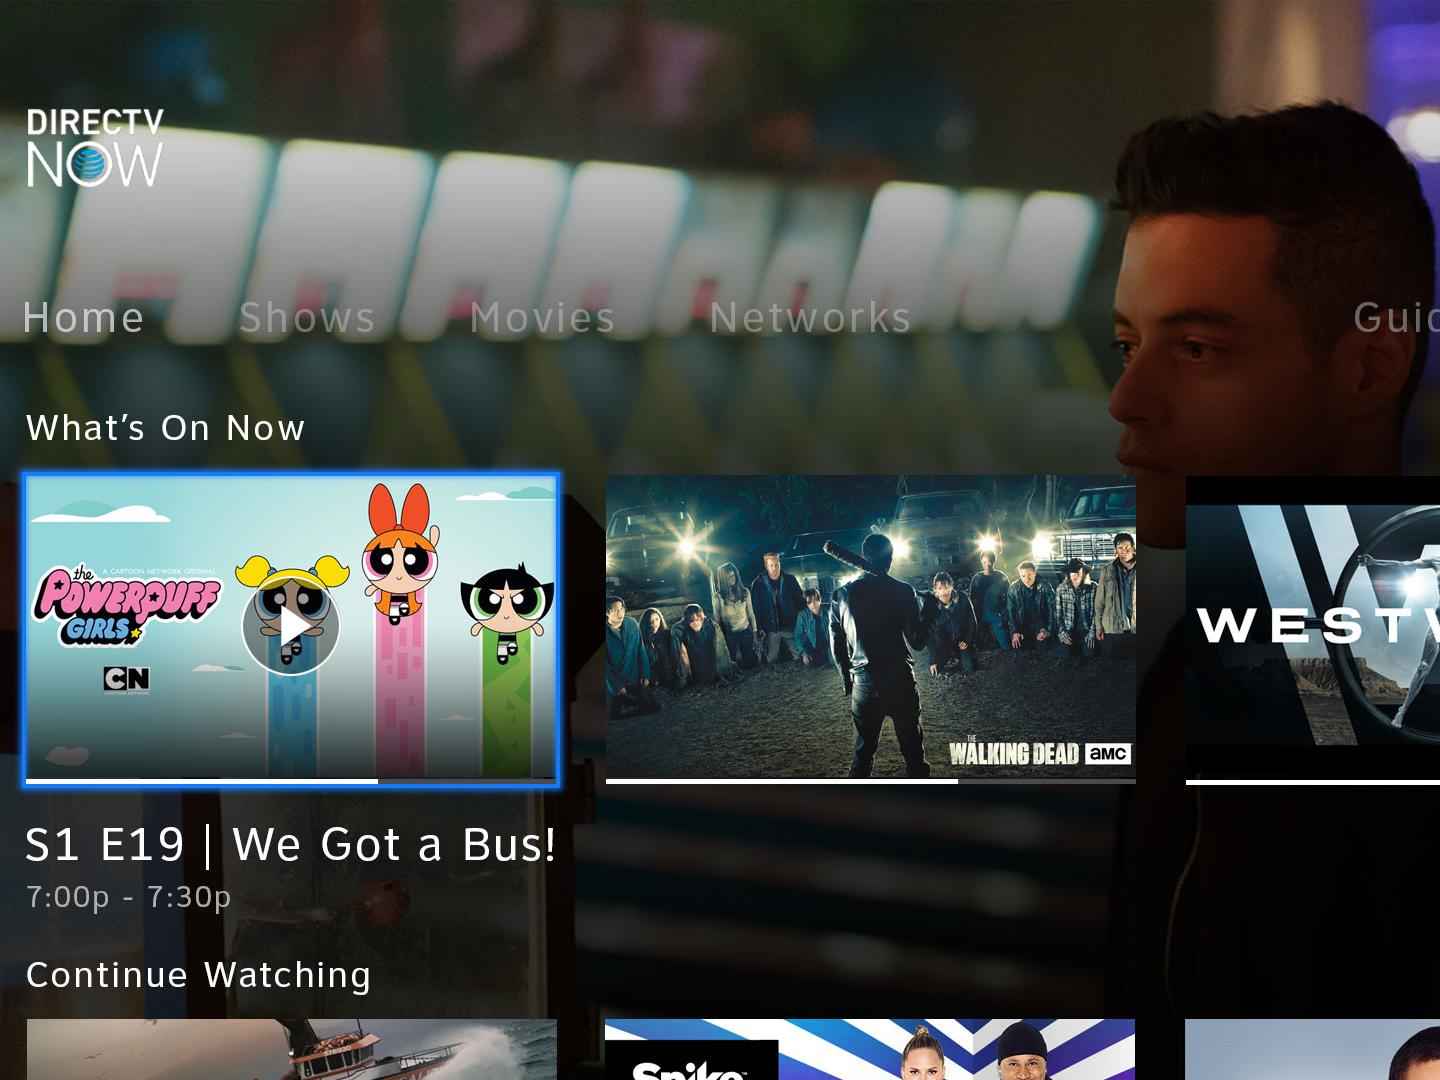 AT&T's new $35 streaming TV package has been plagued by technical problems